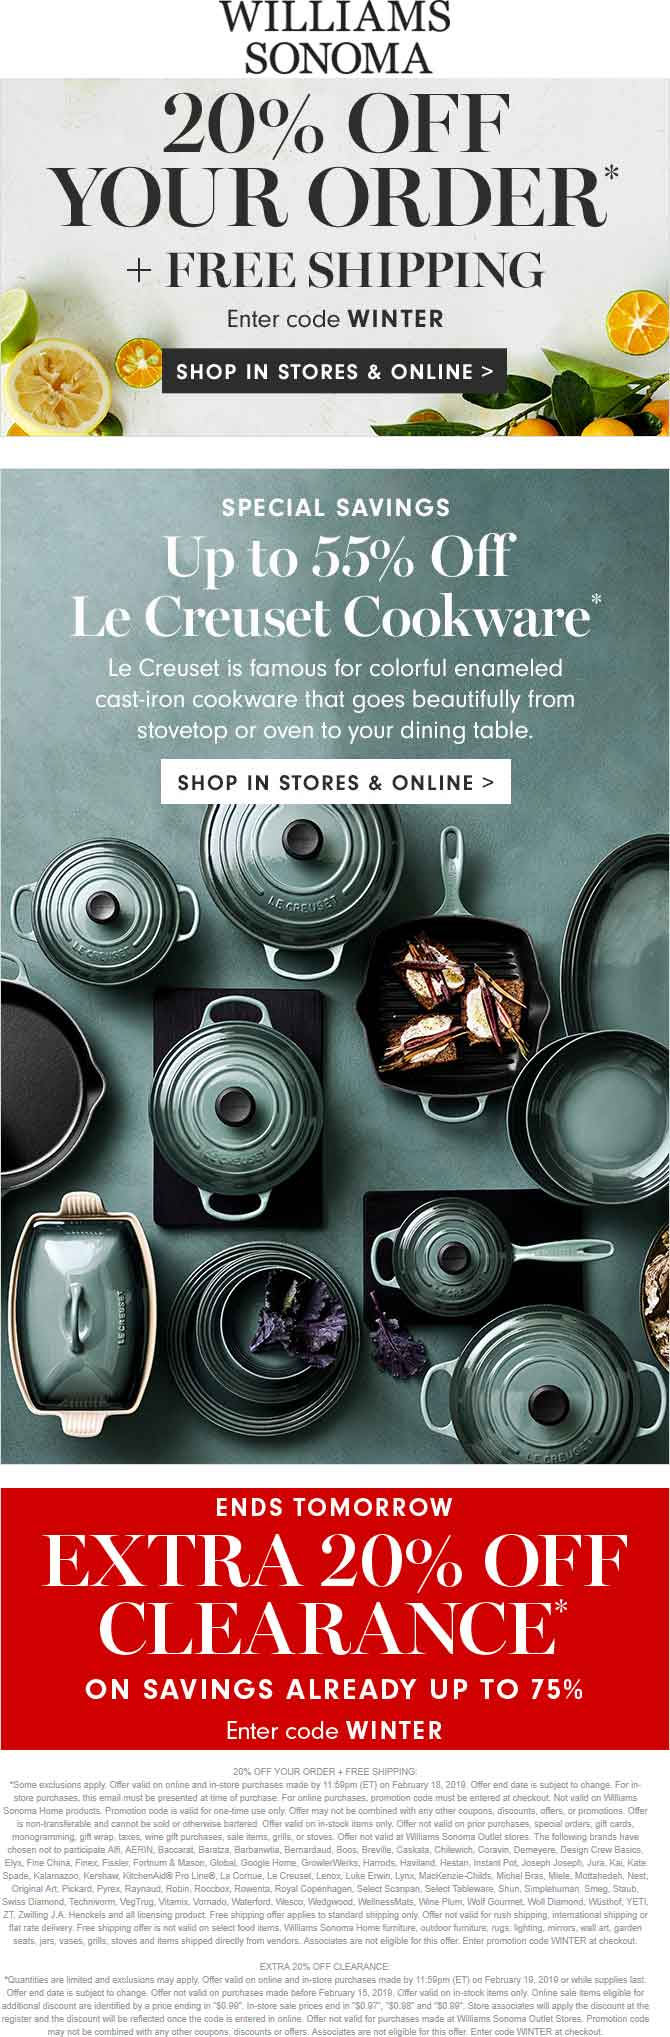 Williams Sonoma Coupon May 2019 20% off at Williams Sonoma, or online via promo code WINTER